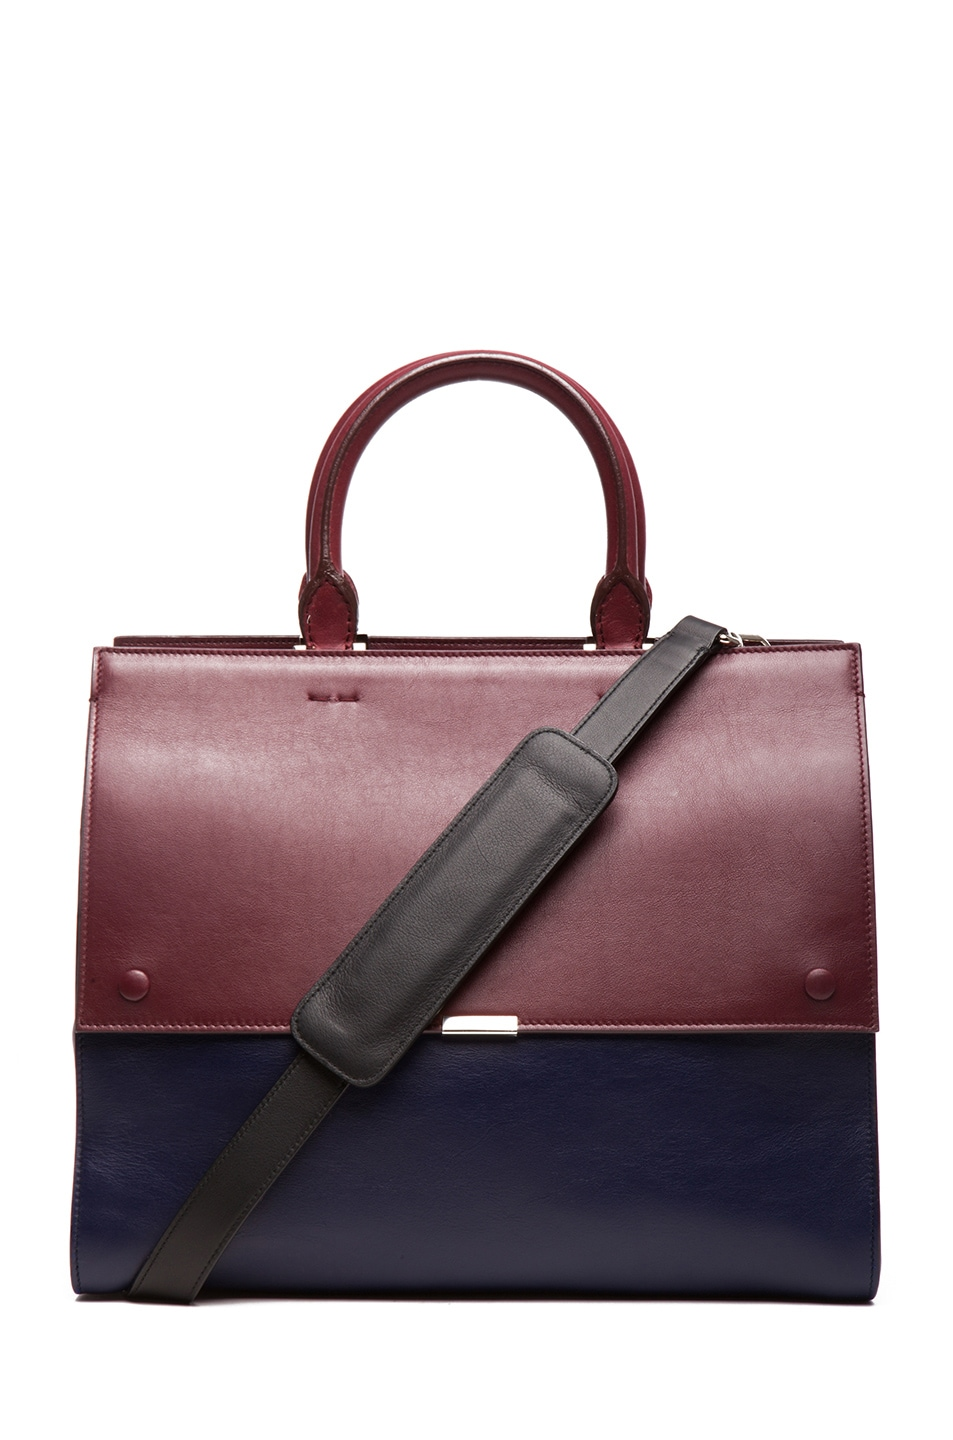 Image 1 of Victoria Beckham Soft Tote in Blue and Oxblood